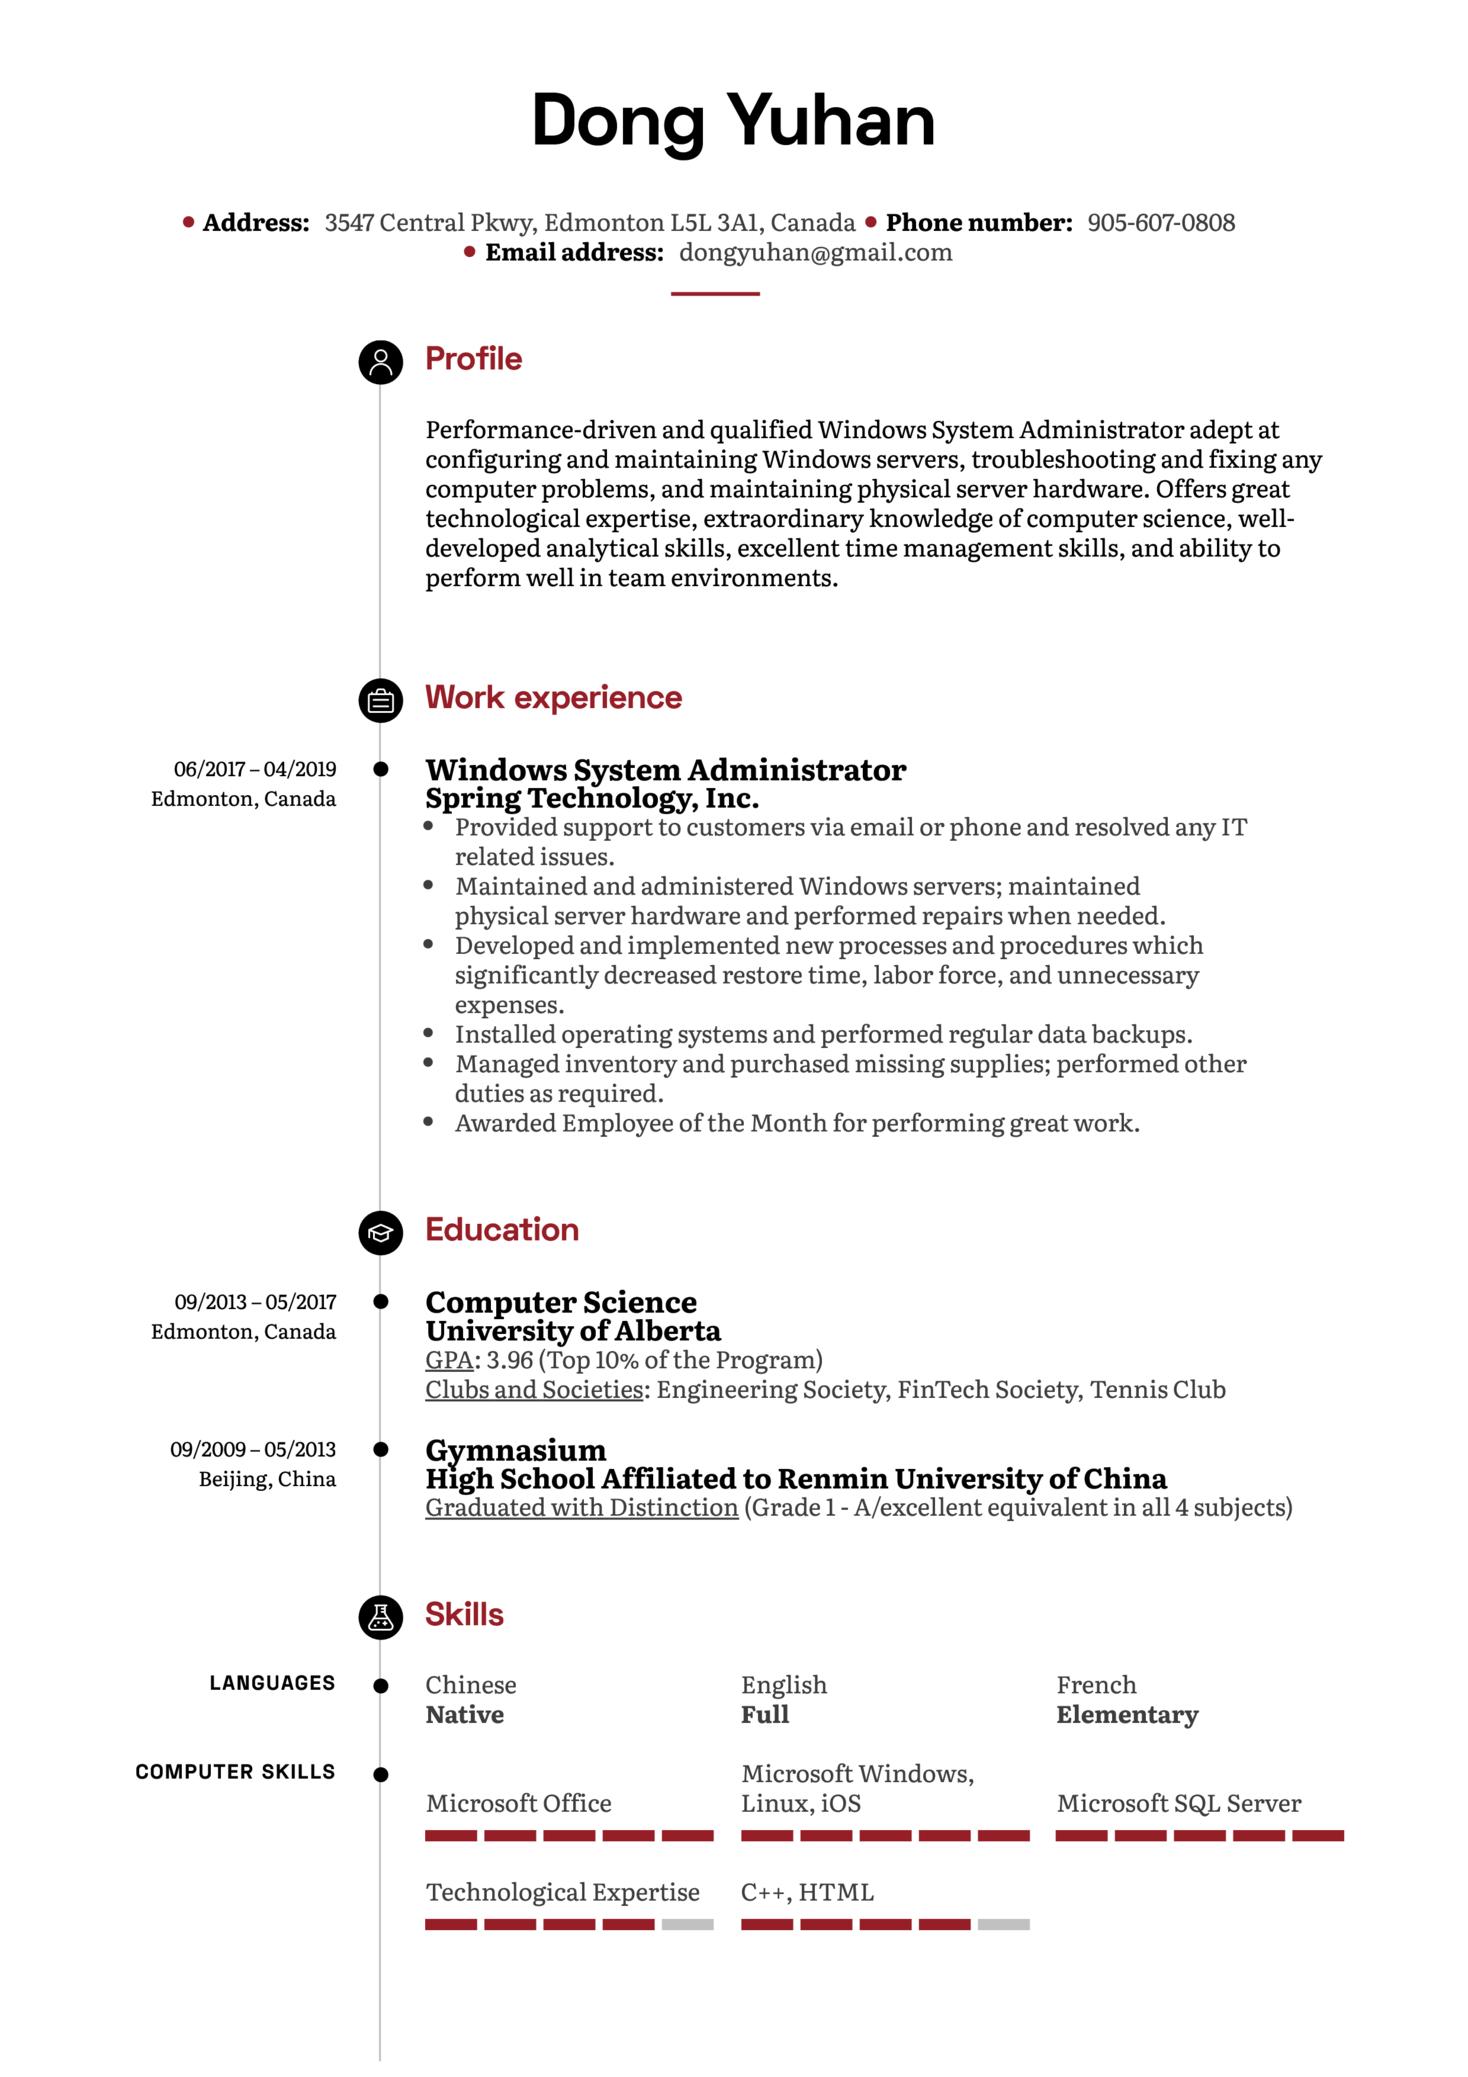 Windows System Administrator Resume Sample (Part 1)